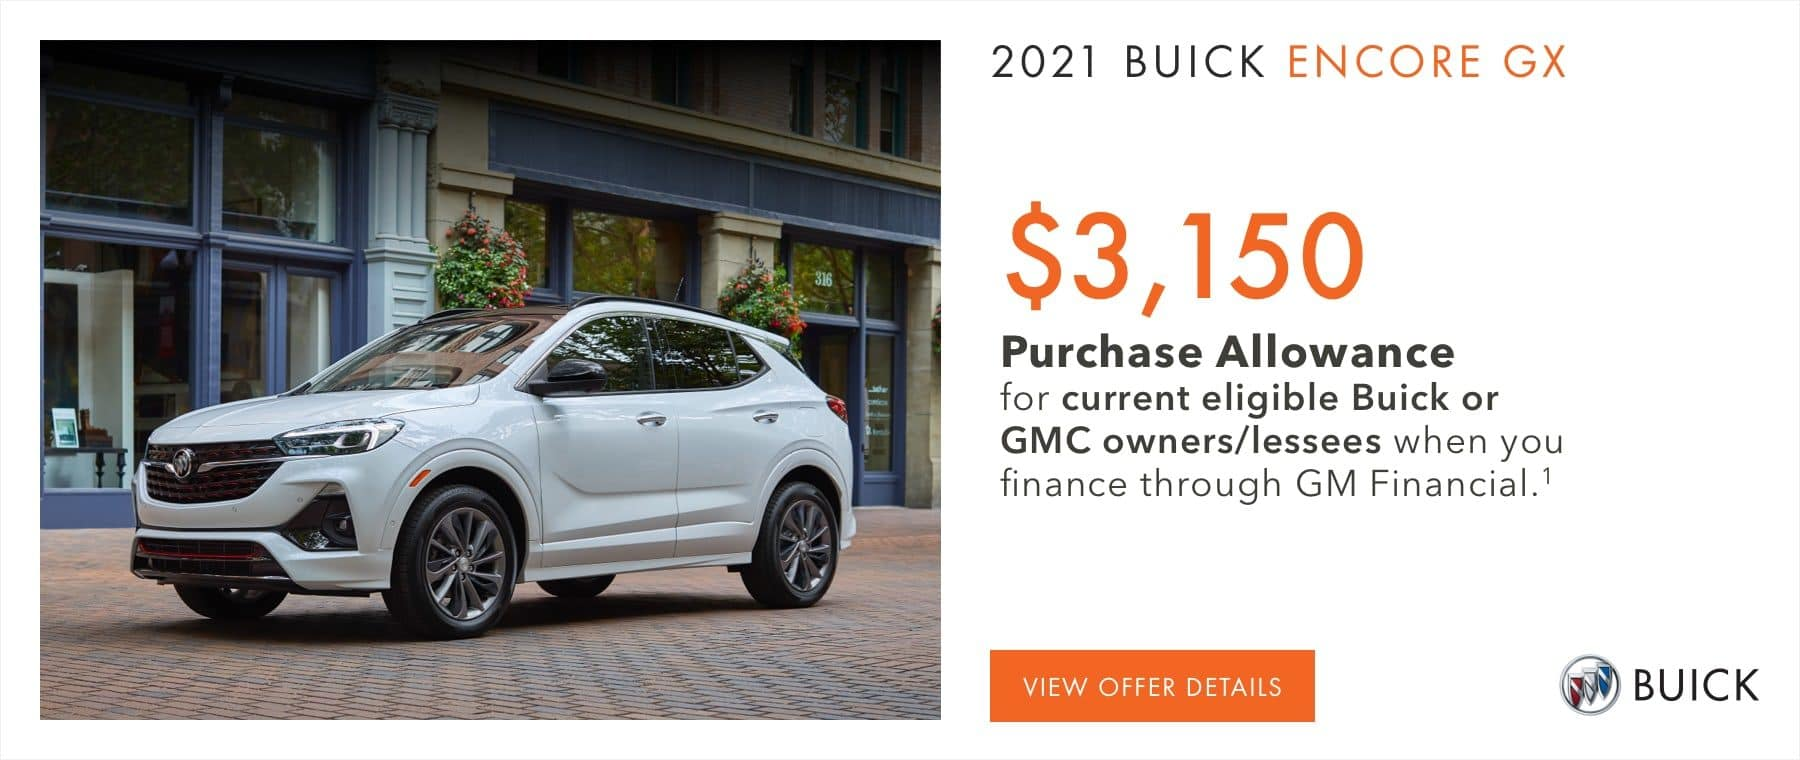 $3,150 Purchase Allowance for current eligible Buick or GMC owners/lessees when you finance through GM Financial.1